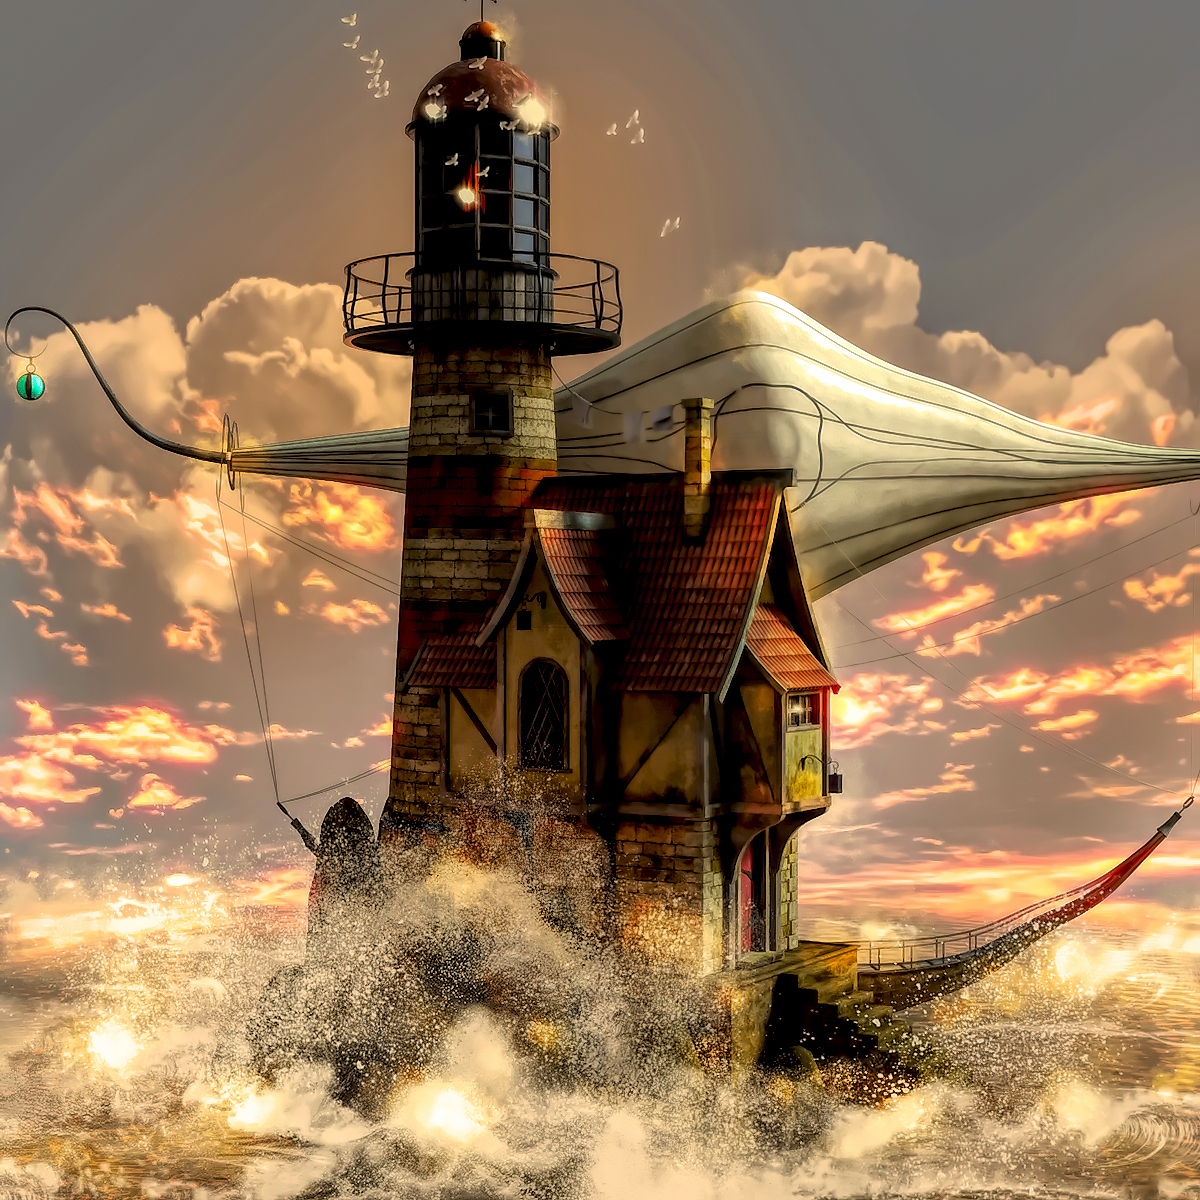 Flighthouse by Savage_dragon